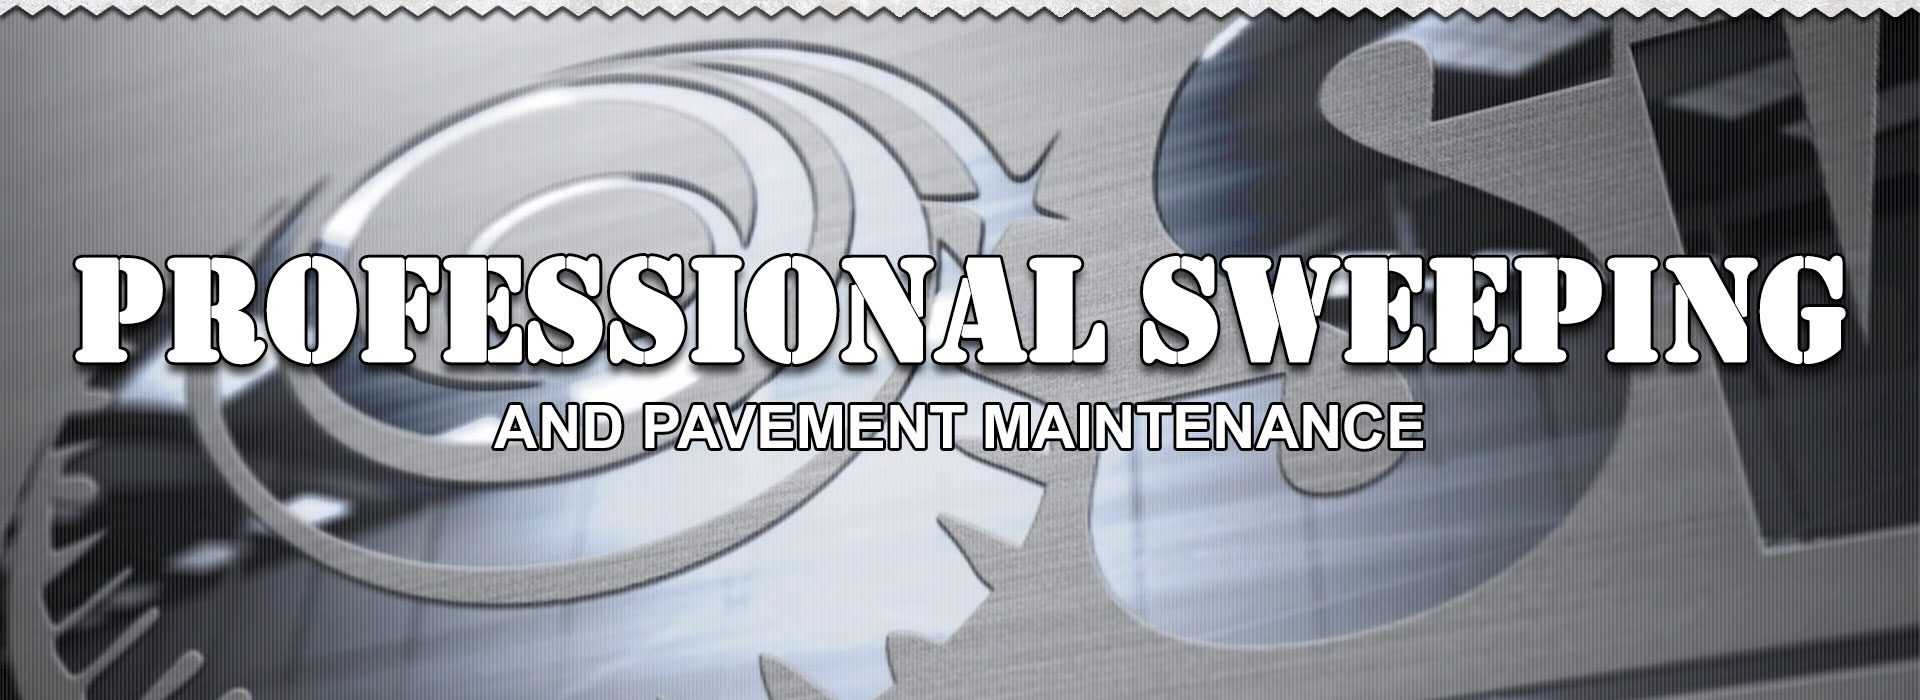 Louisiana's Official Street Sweeping Professionals